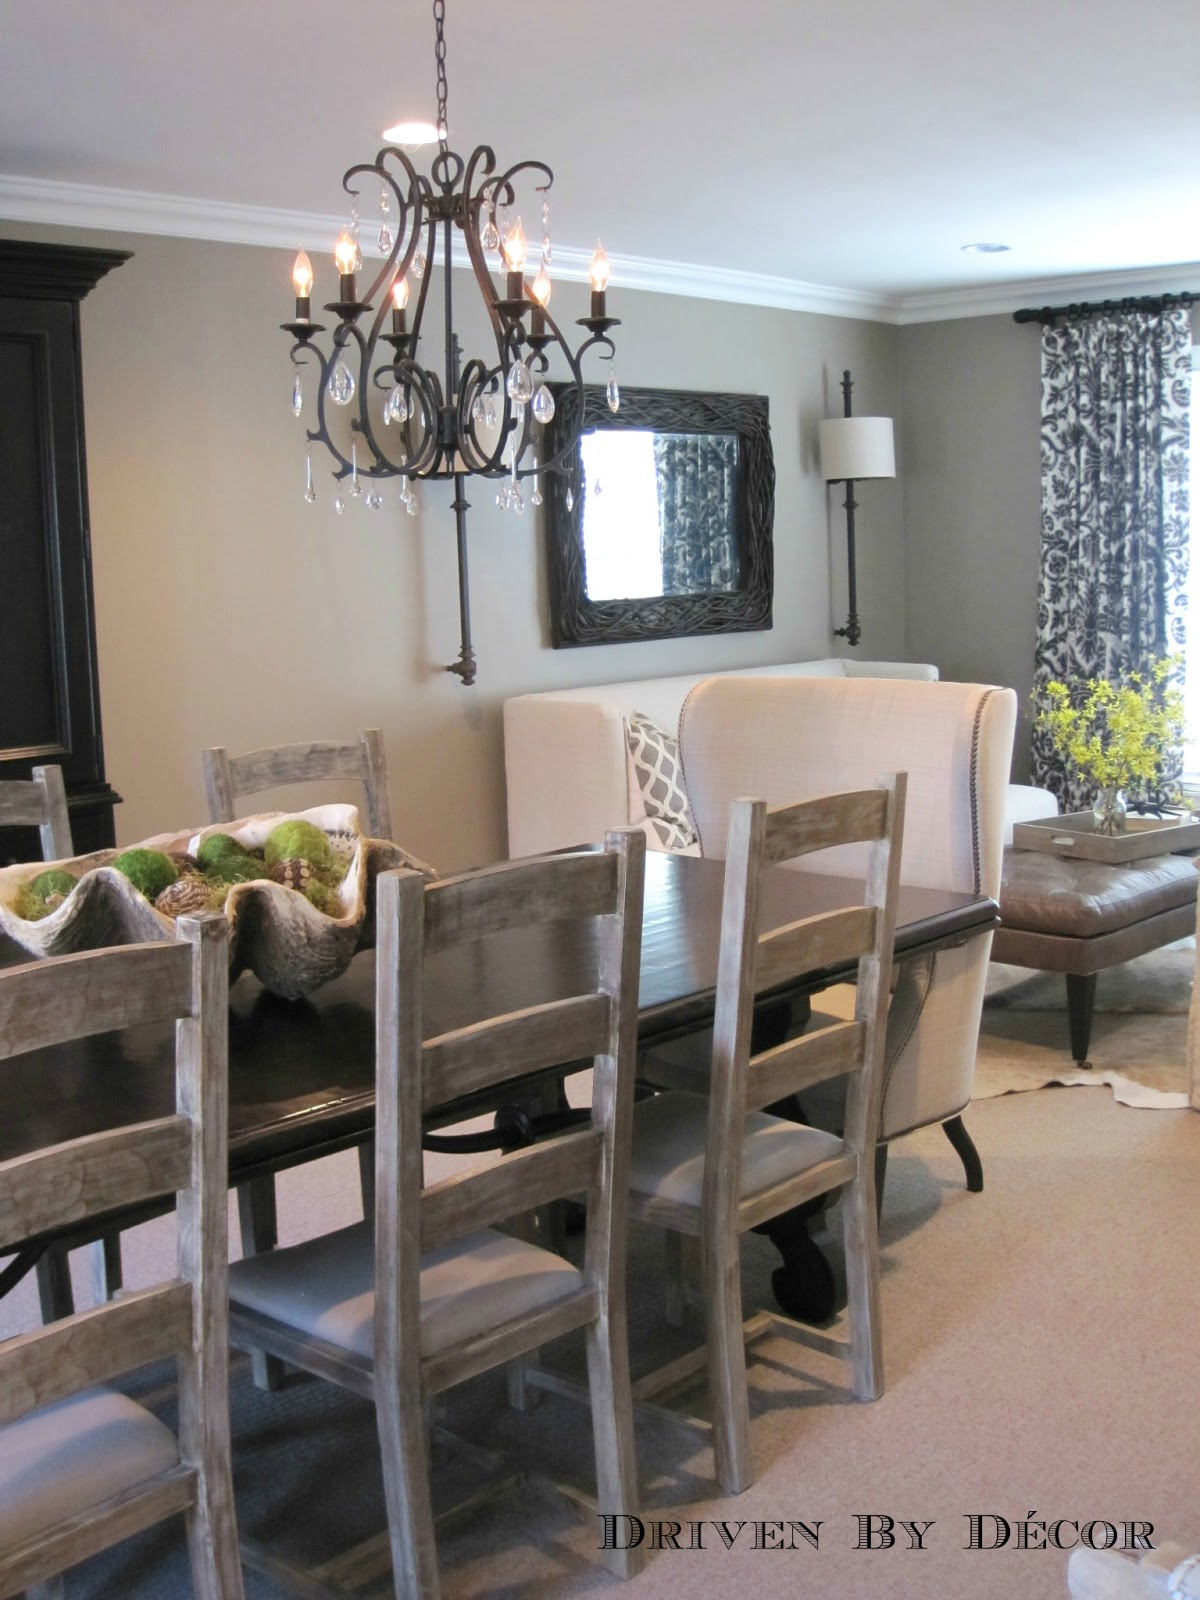 Mixing Dining Room Chairs Dining Room Design Ideas Mixed Seating Driven By Decor